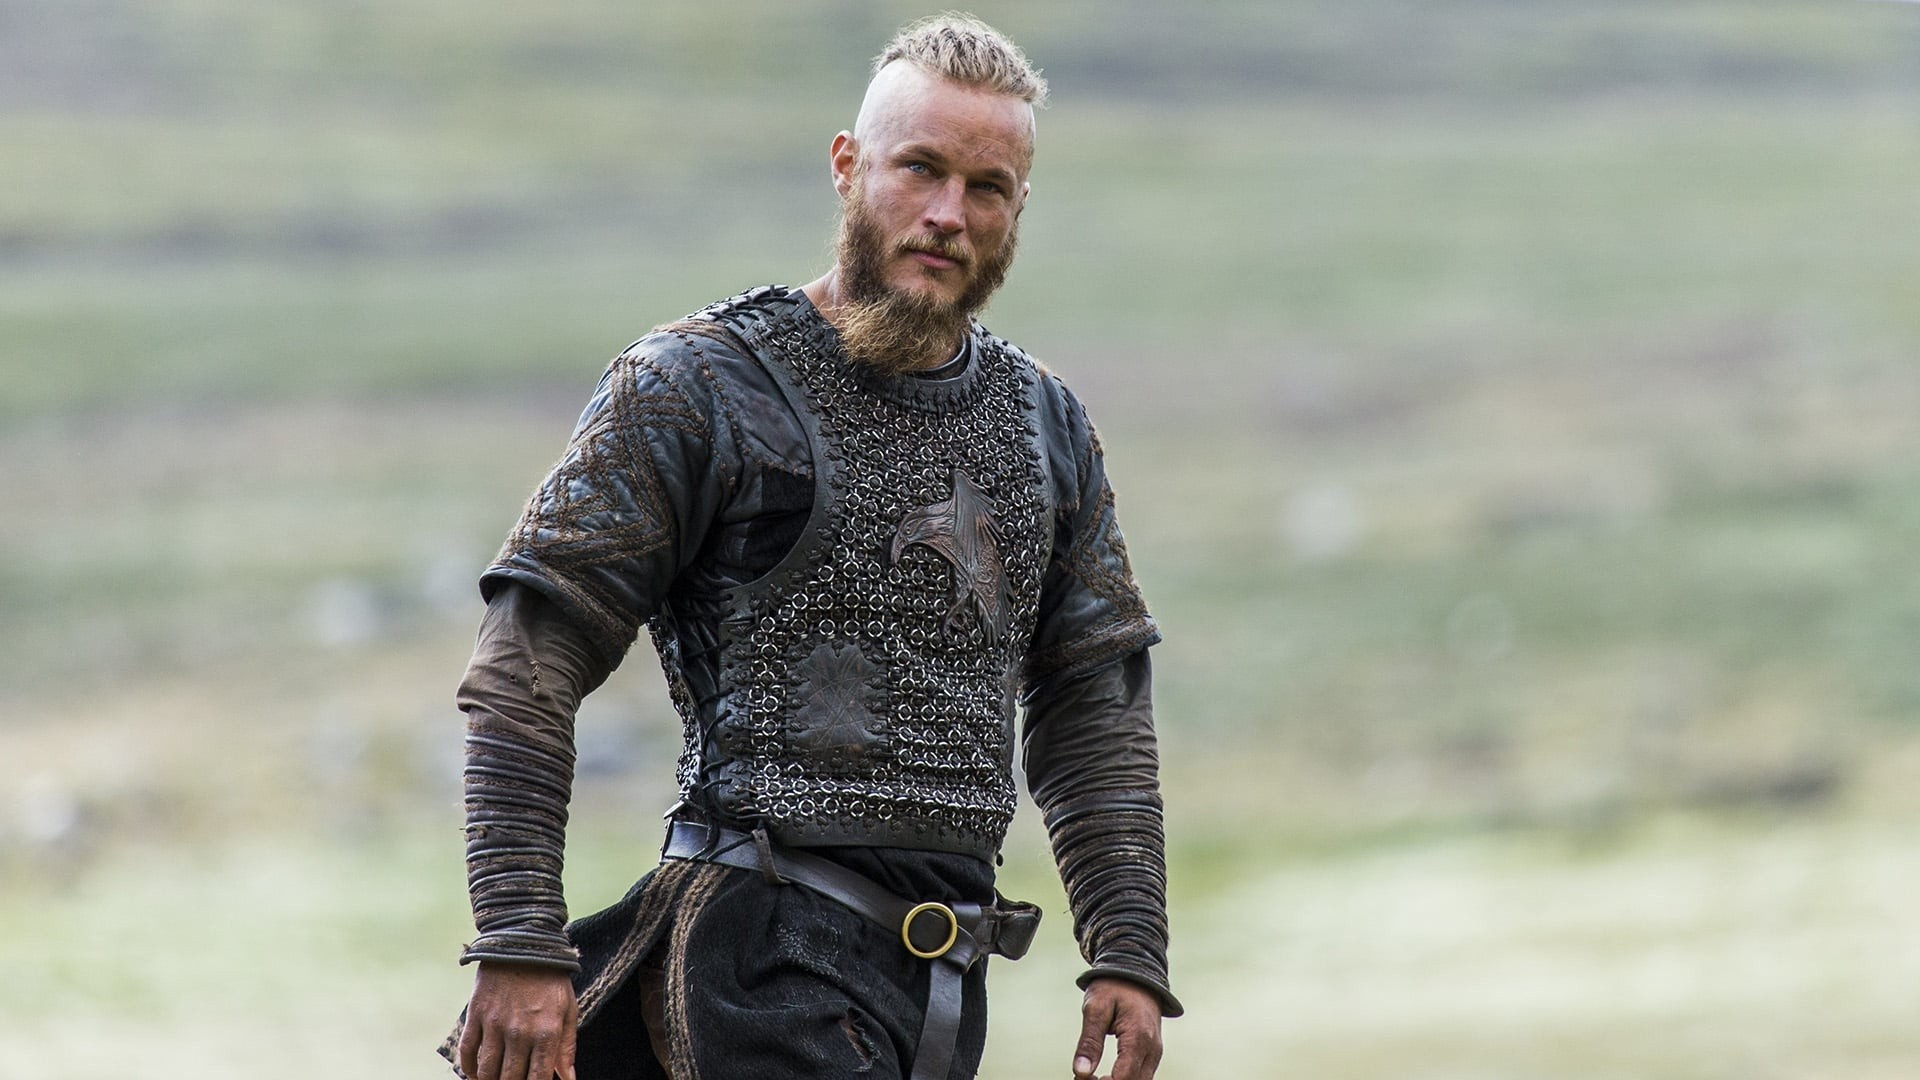 tarvis fimmel one way